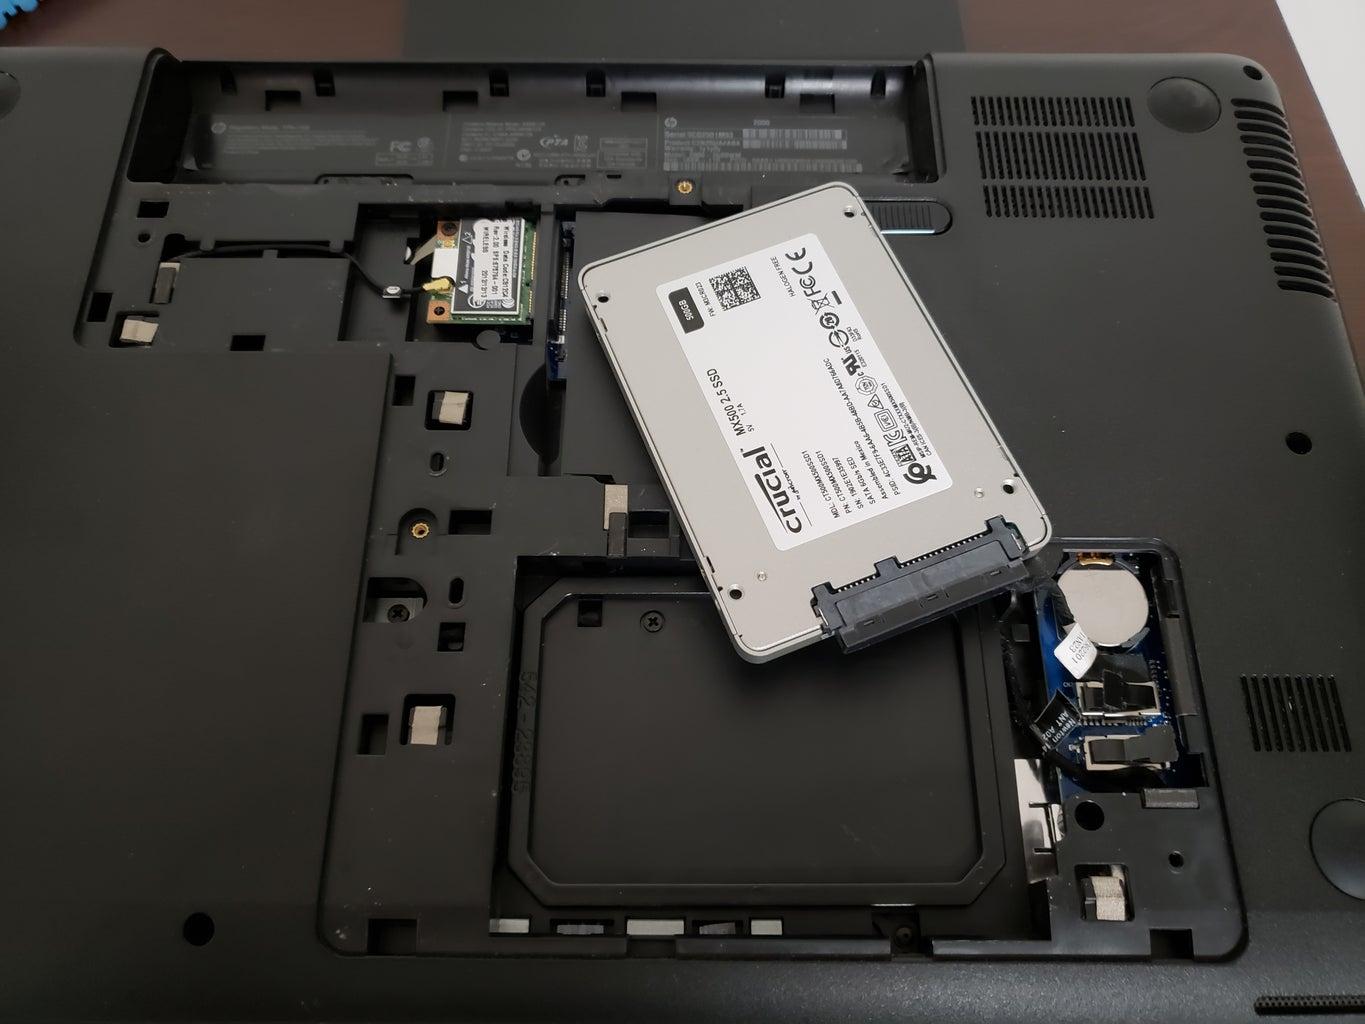 Change the HDD to the SSD